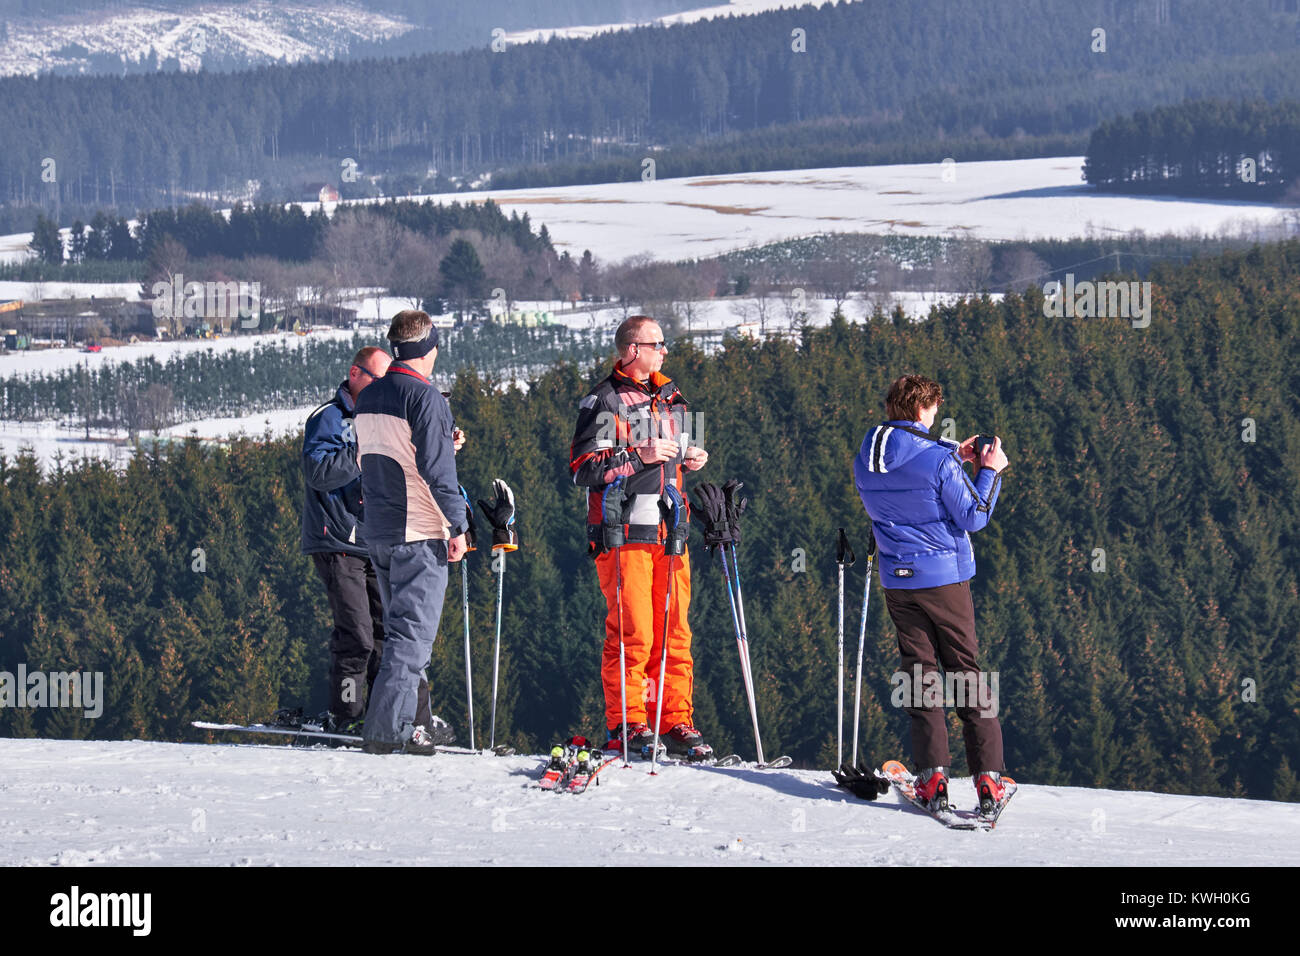 WINTERBERG, GERMANY - FEBRUARY 15, 2017: Group of skiers taking a break on a top at Ski Carousel Winterberg - Stock Image